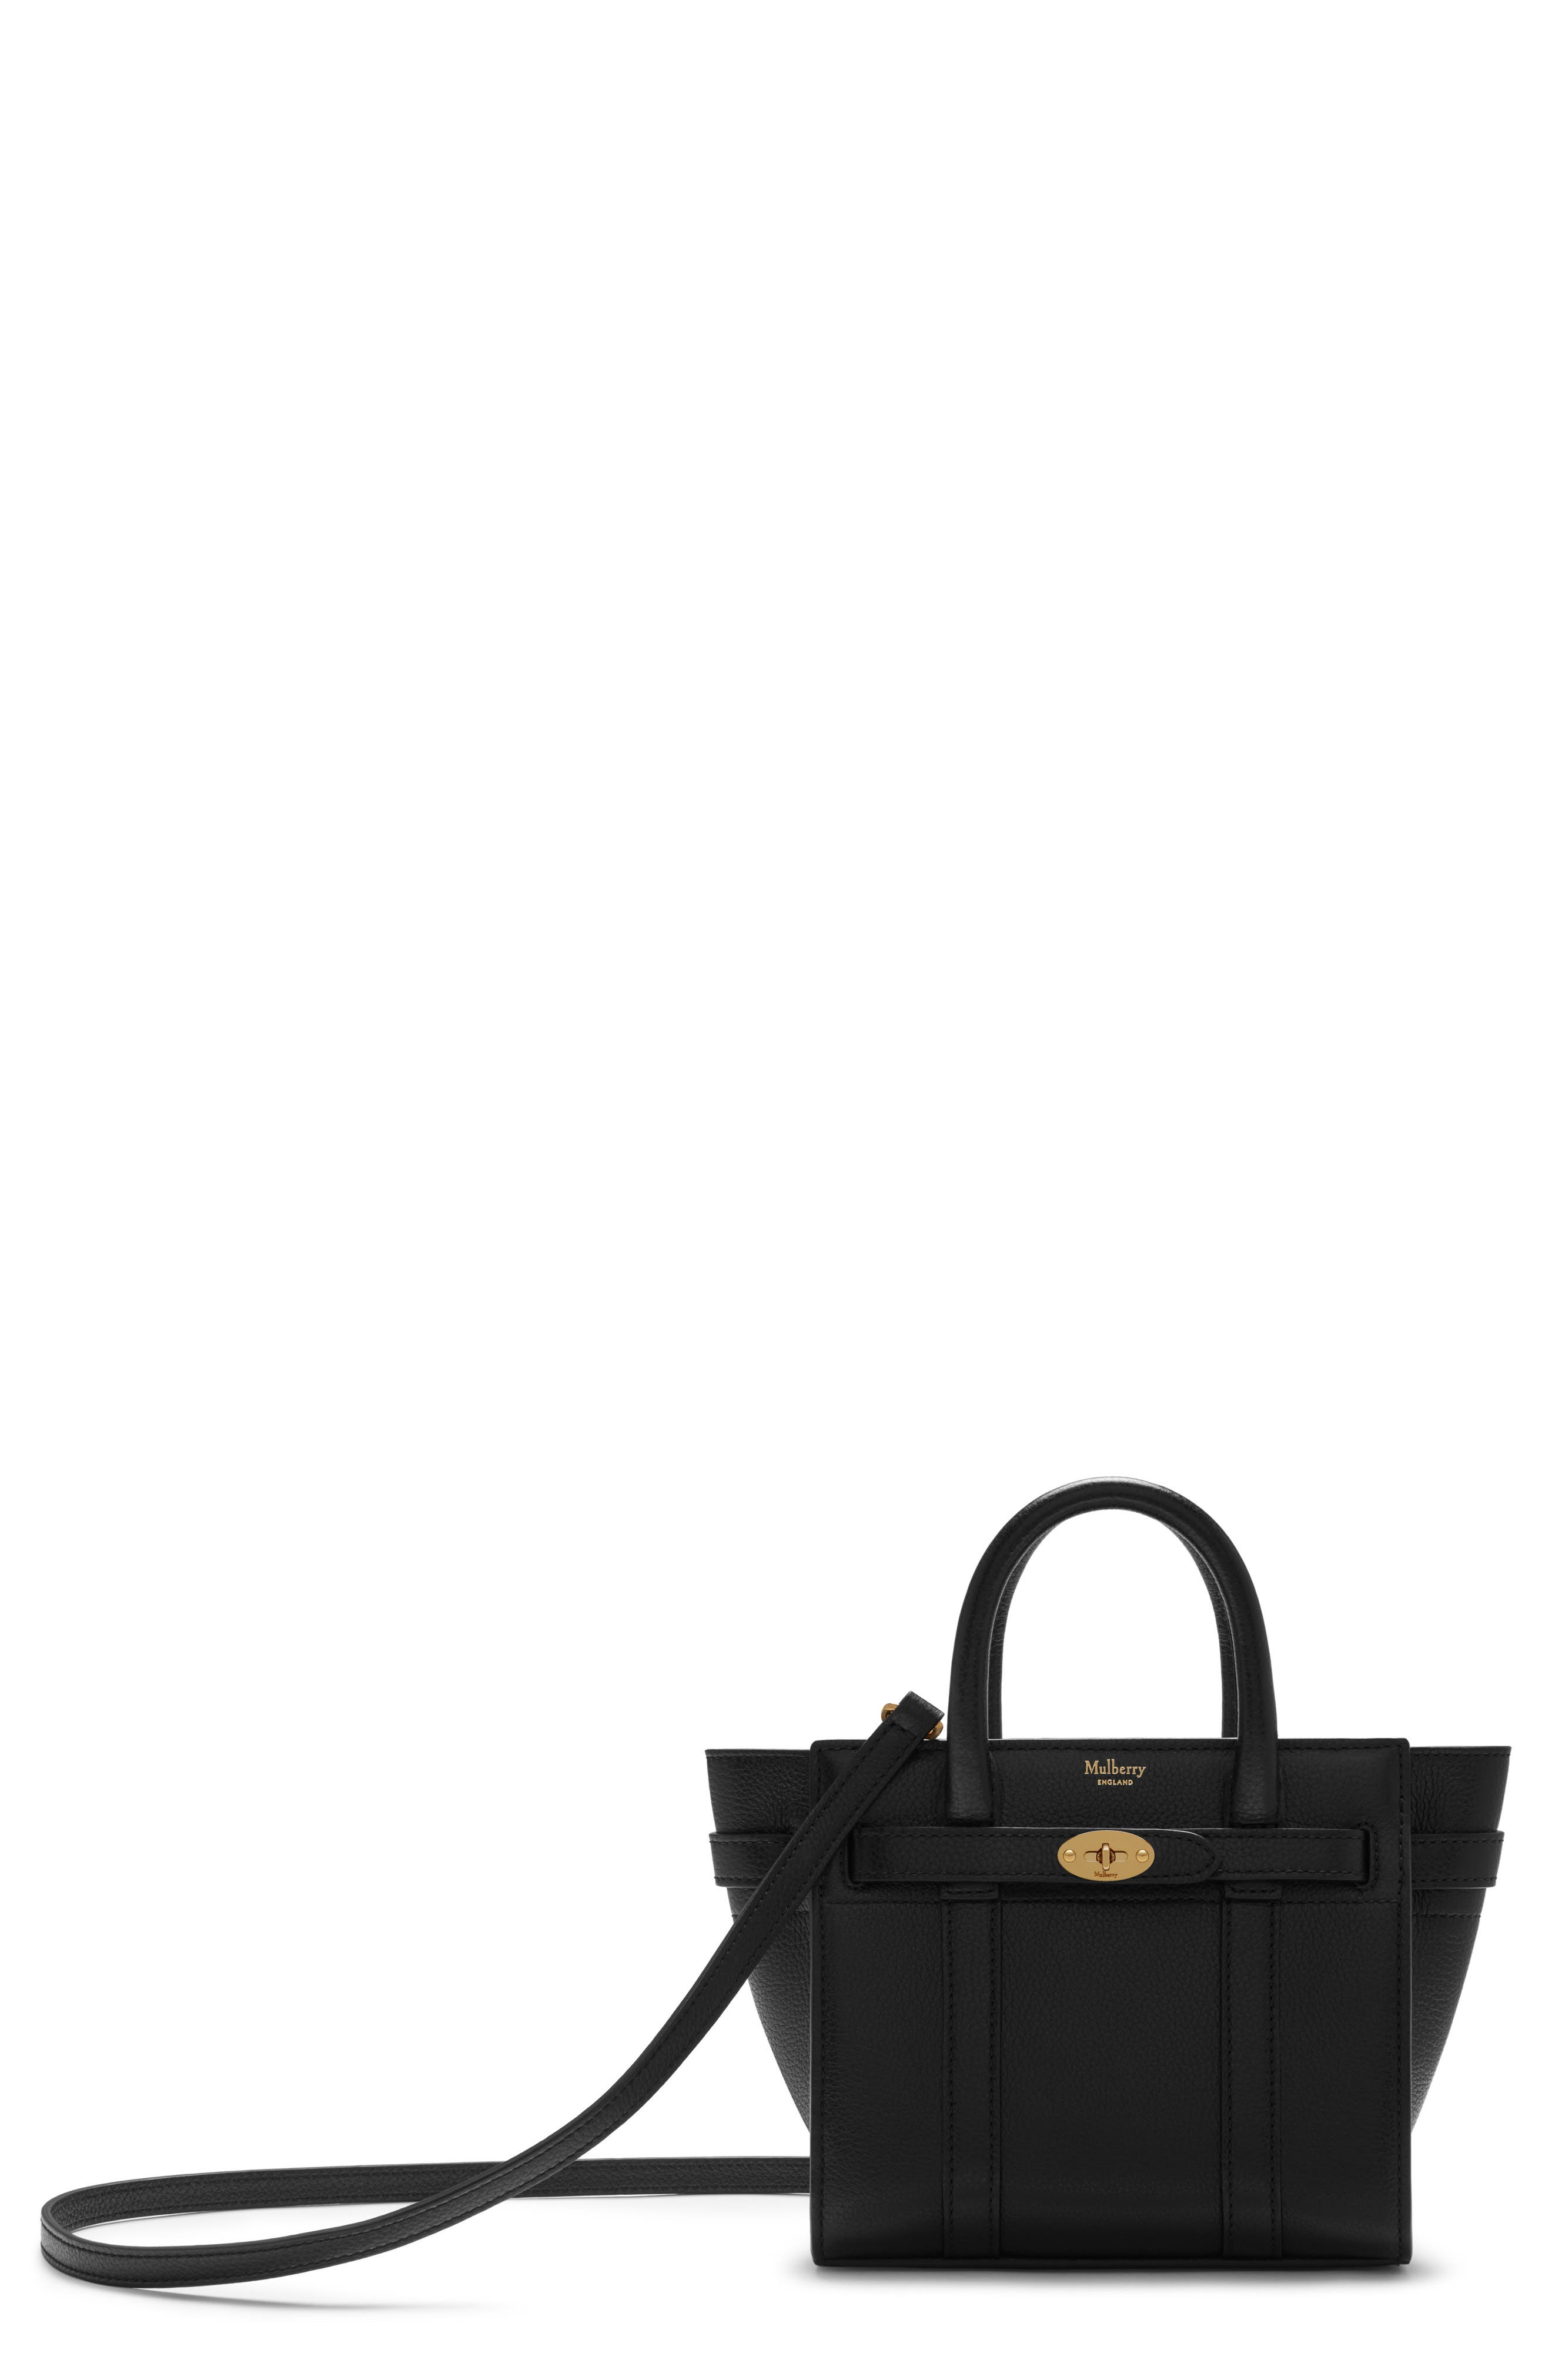 MULBERRY Micro Bayswater Leather Satchel - Black